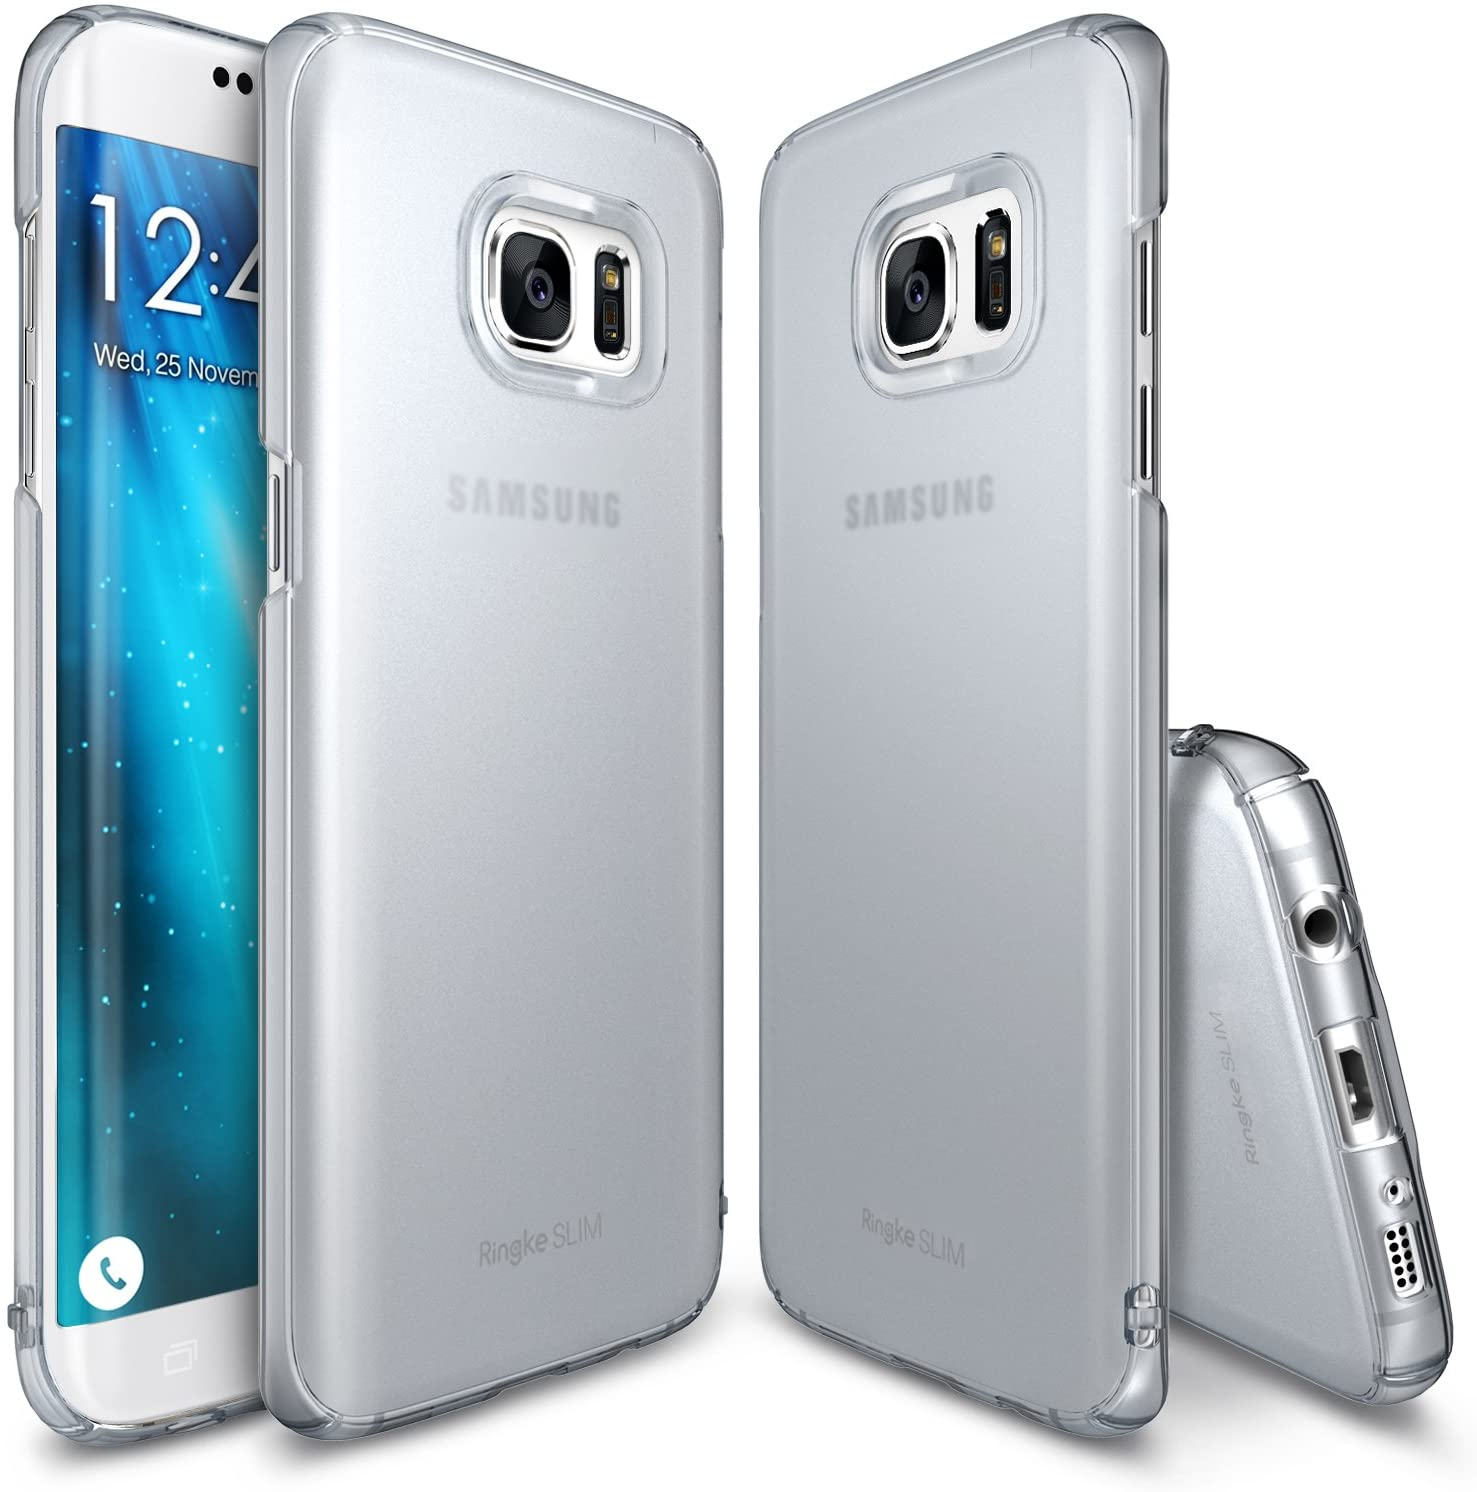 ringke slim premium pc hard cover case for galaxy s7 edge frost gray